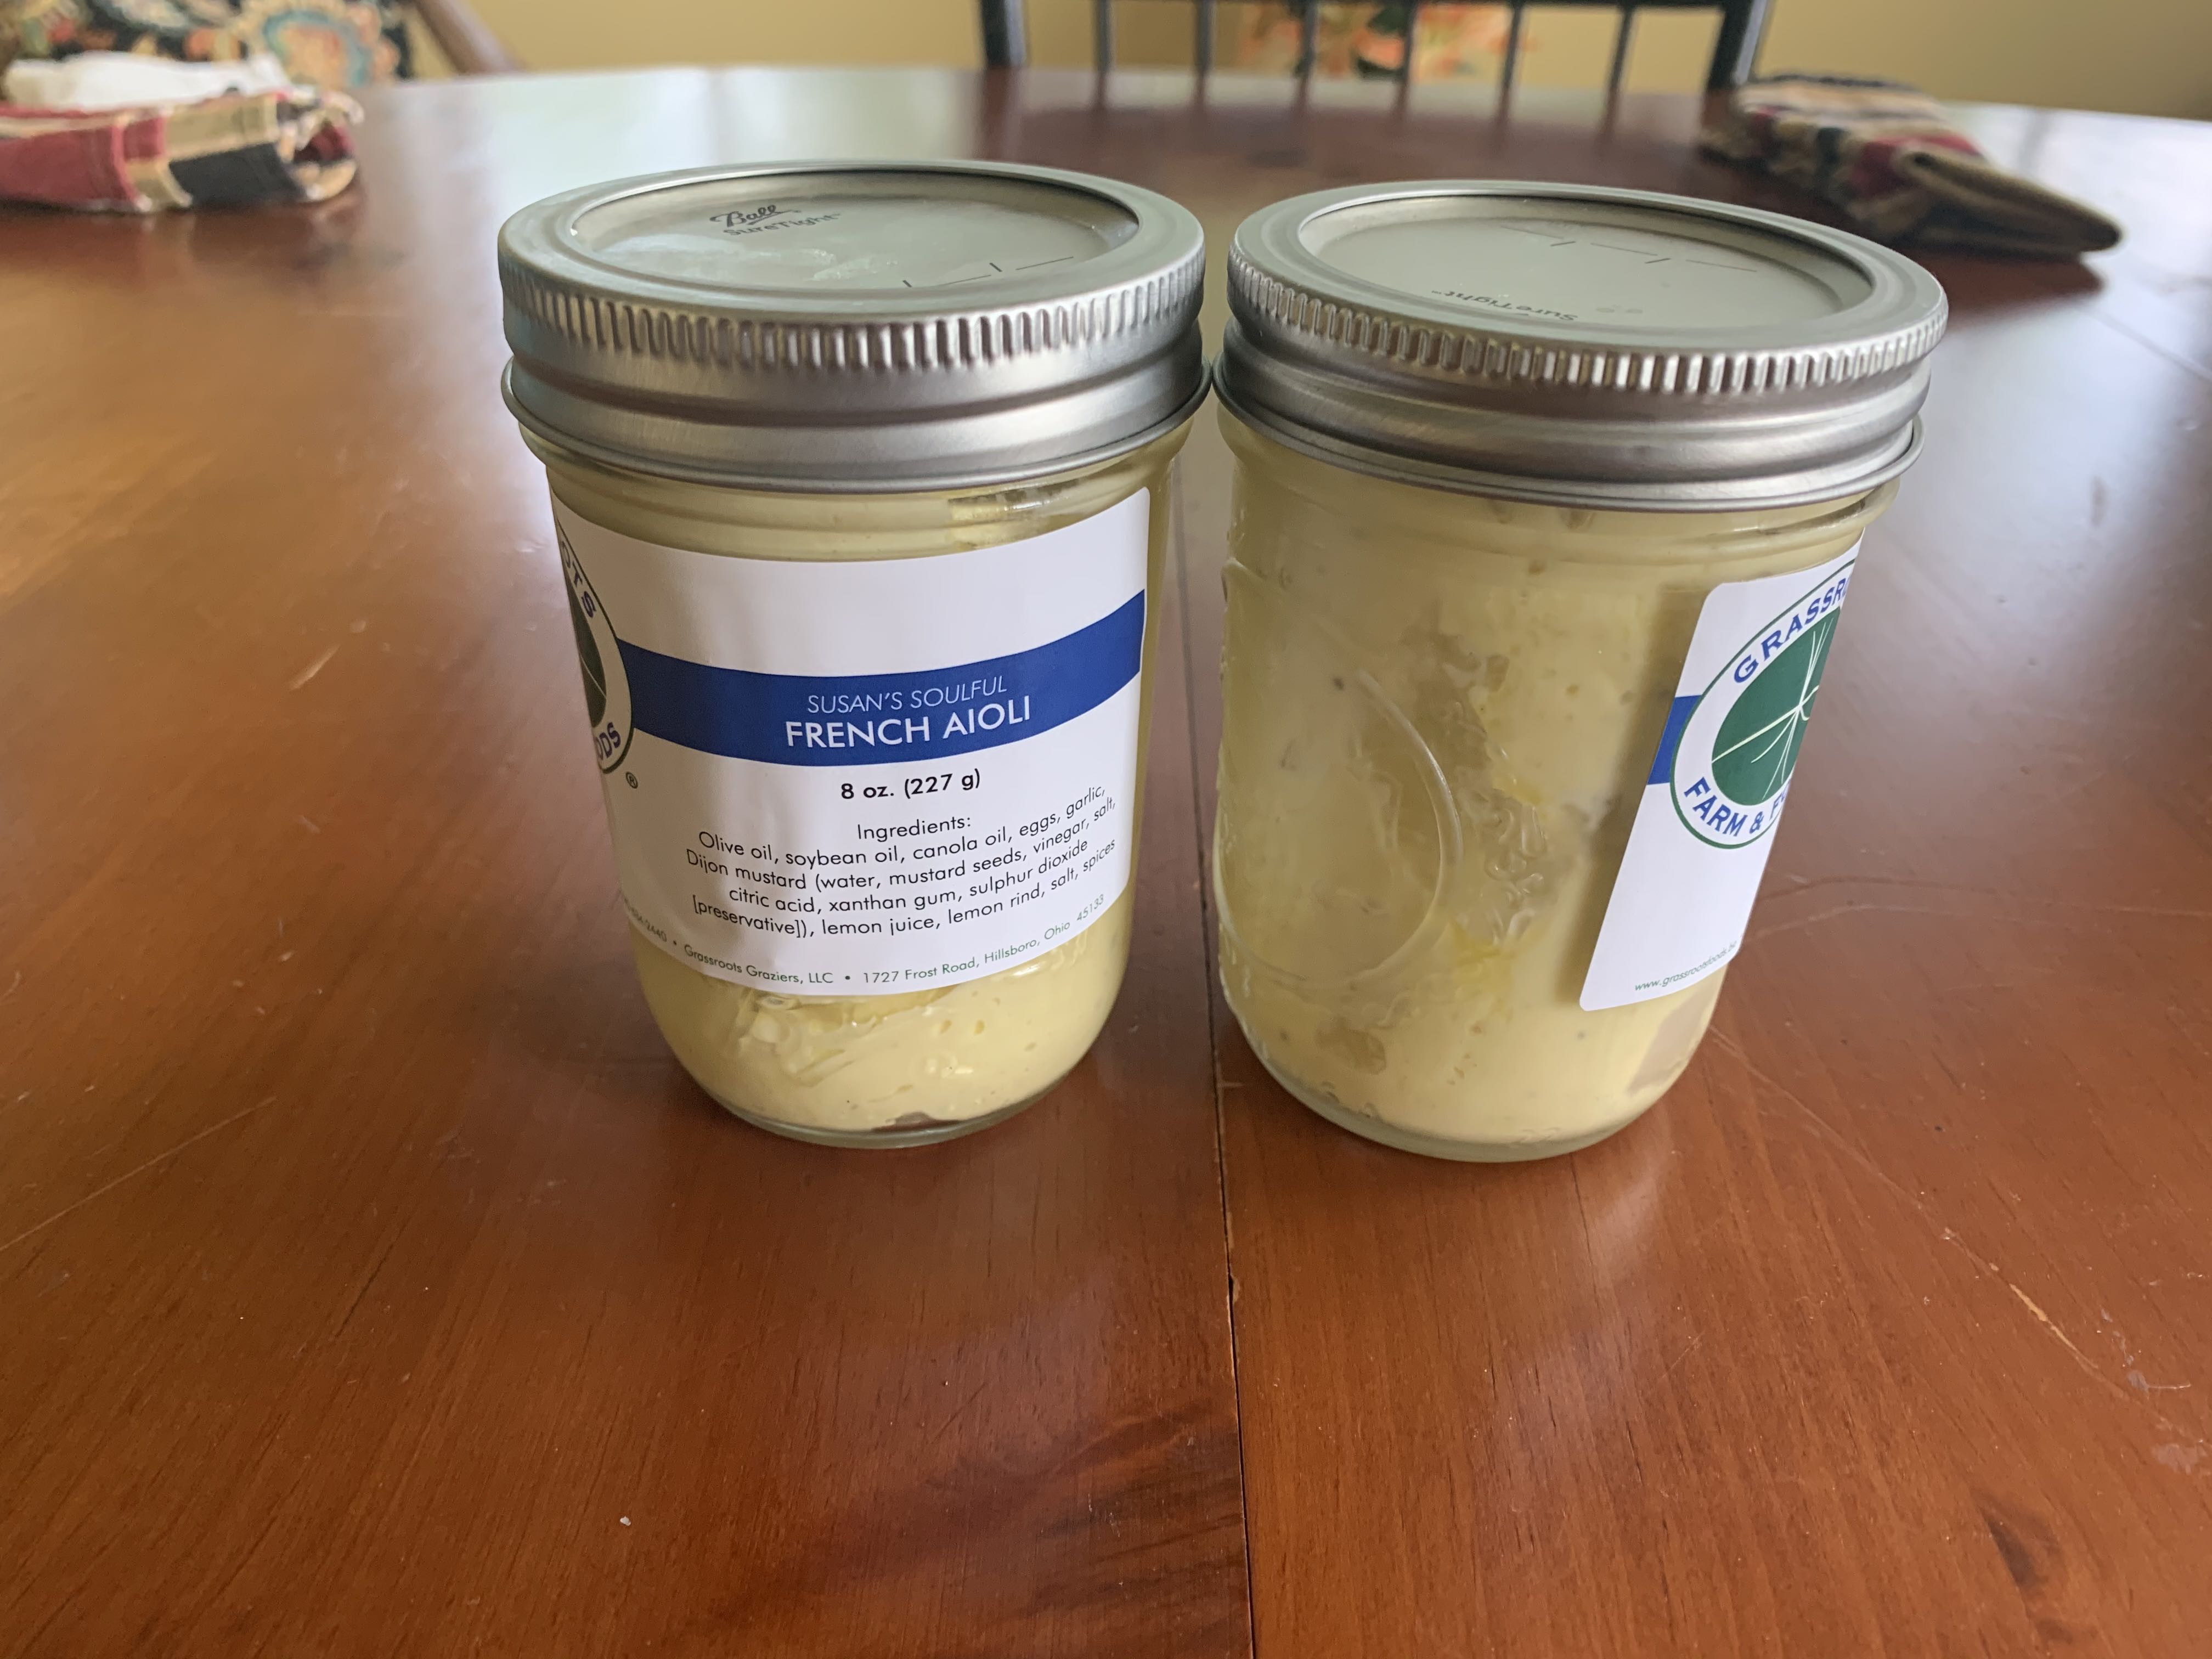 French Aioli